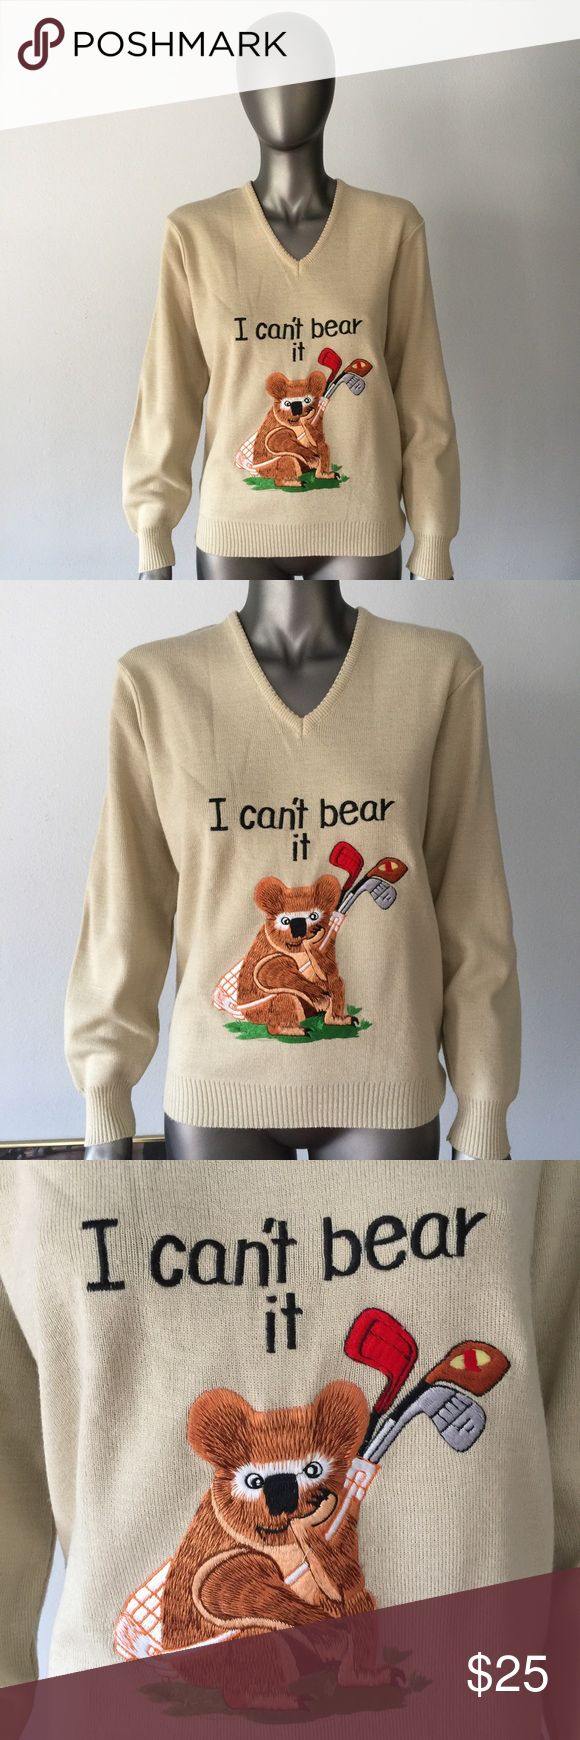 """VINTAGE Lady Lamode I Can't Bear It Sweater 90's VINTAGE Lady Lamode brand sweater with bear sitting chin in fist holding golf clubs. """"I Can't Bear It"""" embroidered on front. Tag says """"Lady Lamode // Active Sportswear // Los Angeles)  Size: XL (looks more like a loose-fitting small to a snug-fitting large)  APPROX MEASUREMENTS: 19"""" (front left armpit seam to front right armpit seam) 24.5"""" (top of shoulder to bottom hem of shirt)  CONDITION: Excellent Vintage  SHIPPING: In most cases, I ship…"""